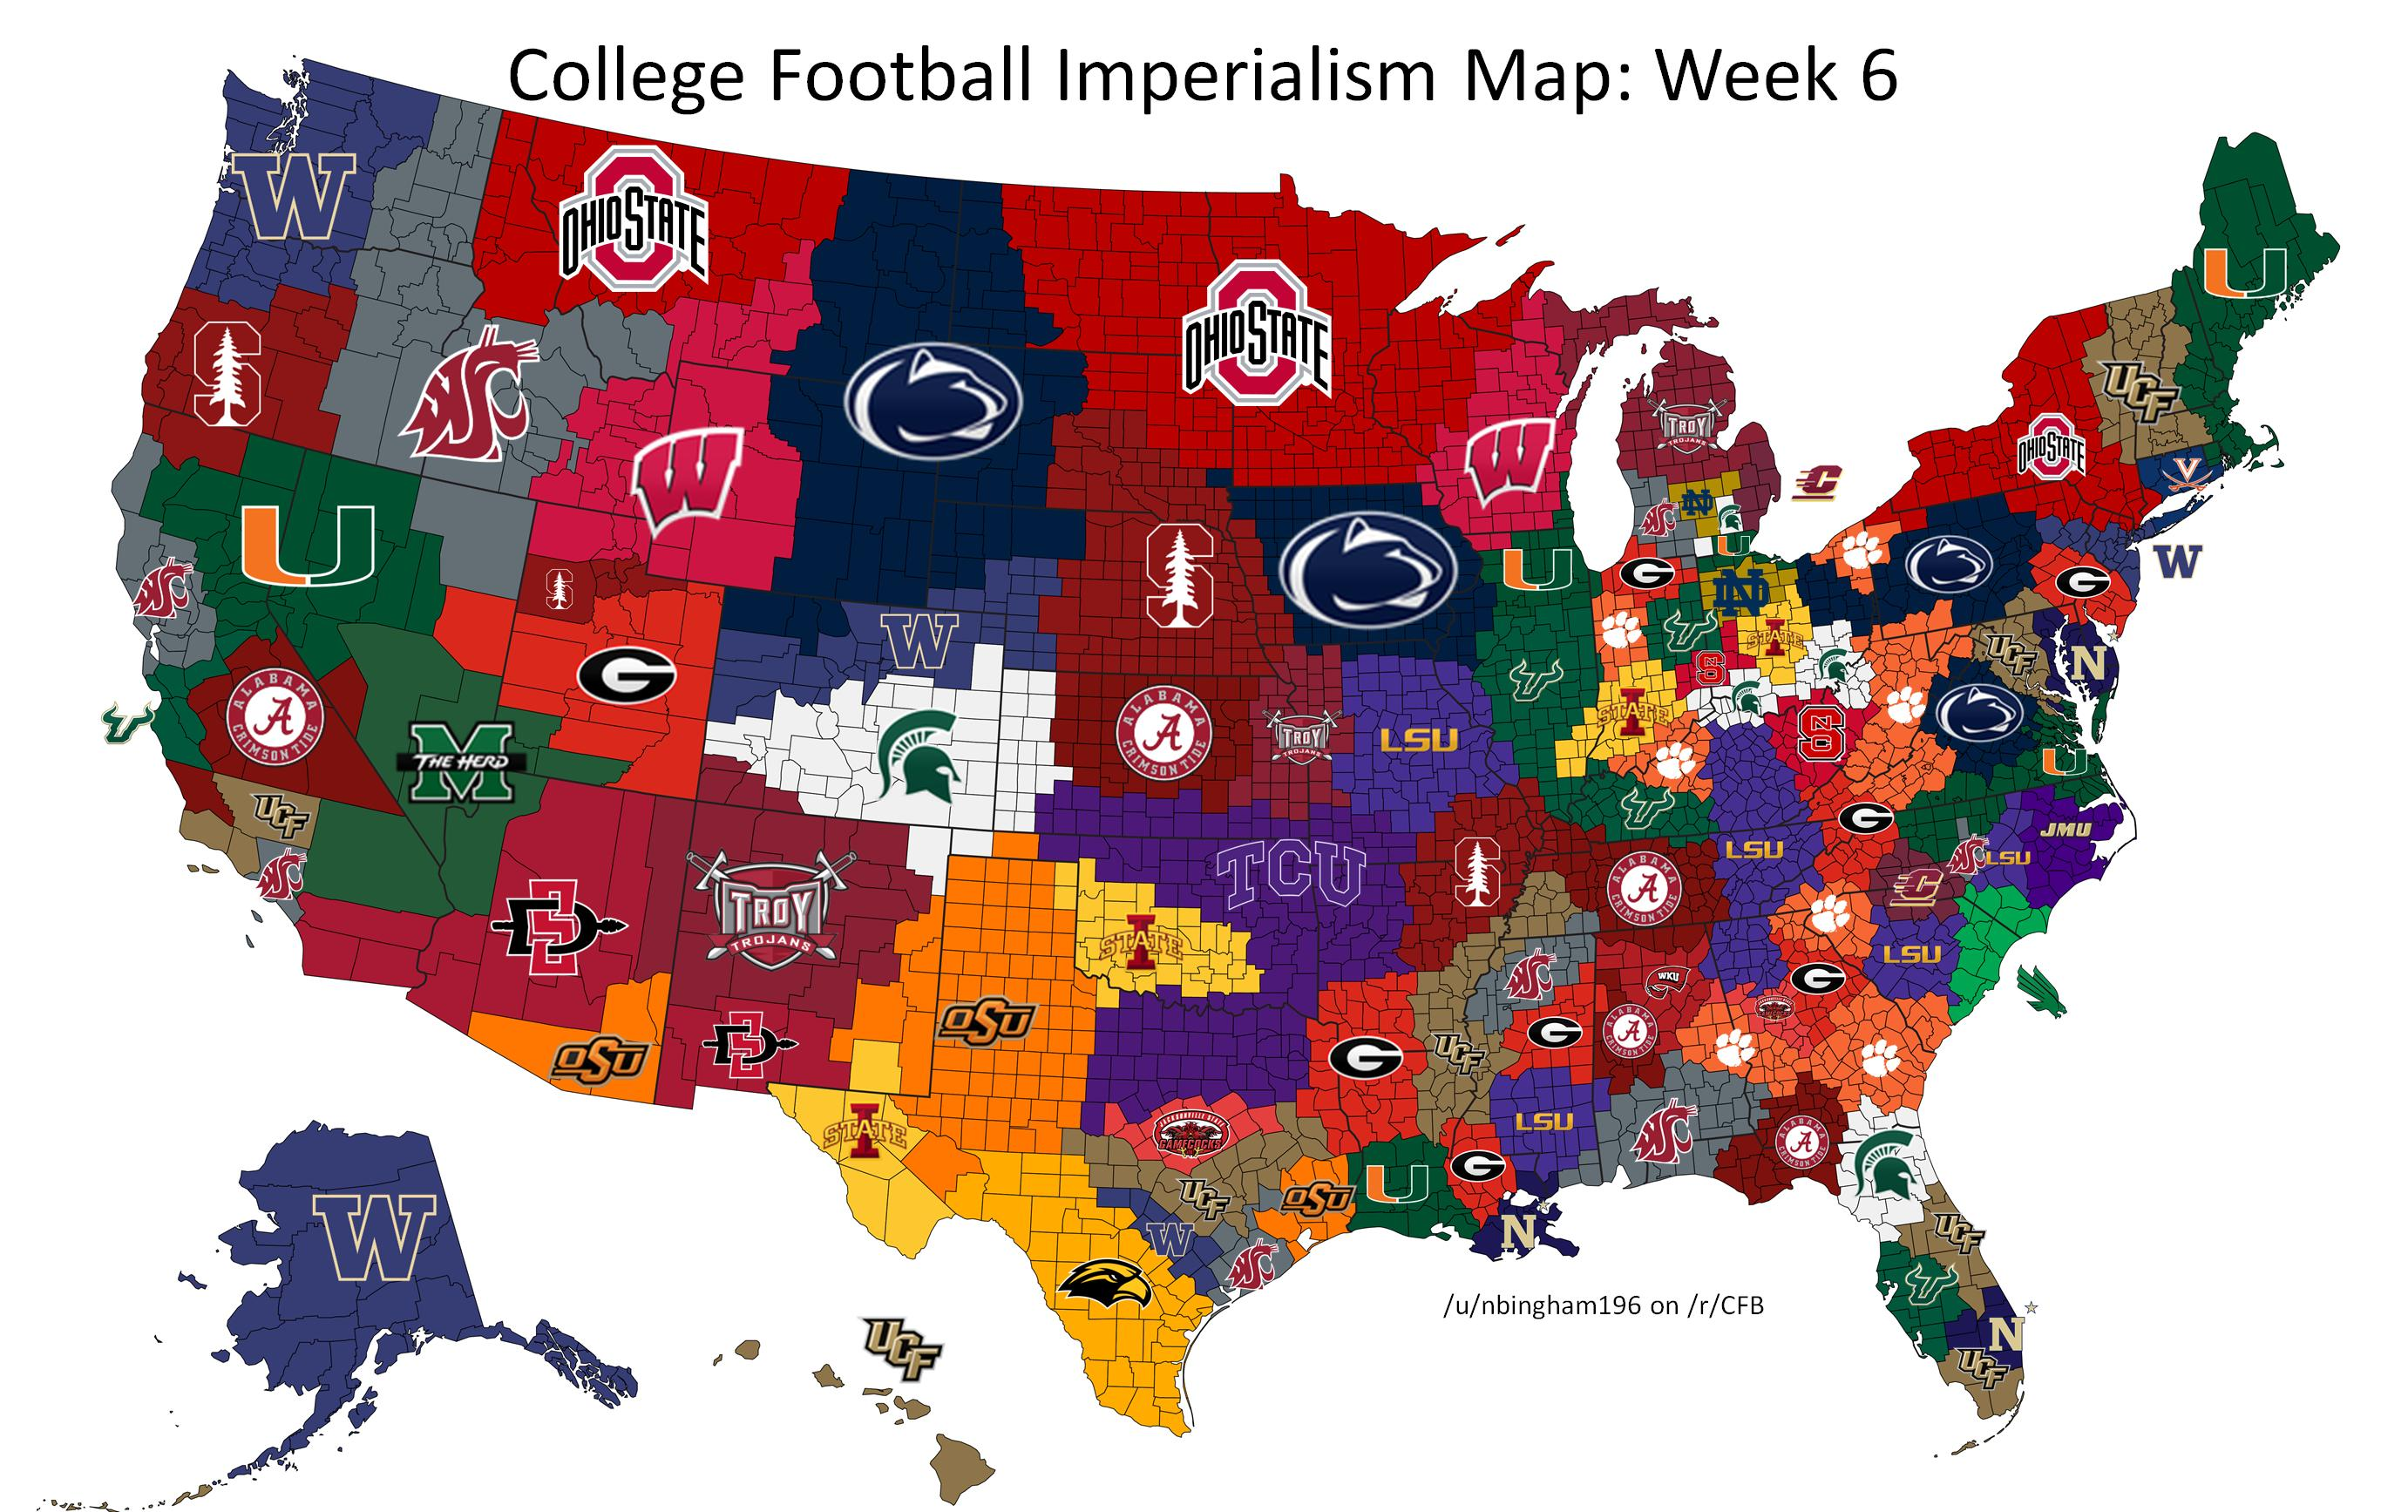 Iowa State Owns Columbus Norman In Reddit Users College Football - Map of us reddit user